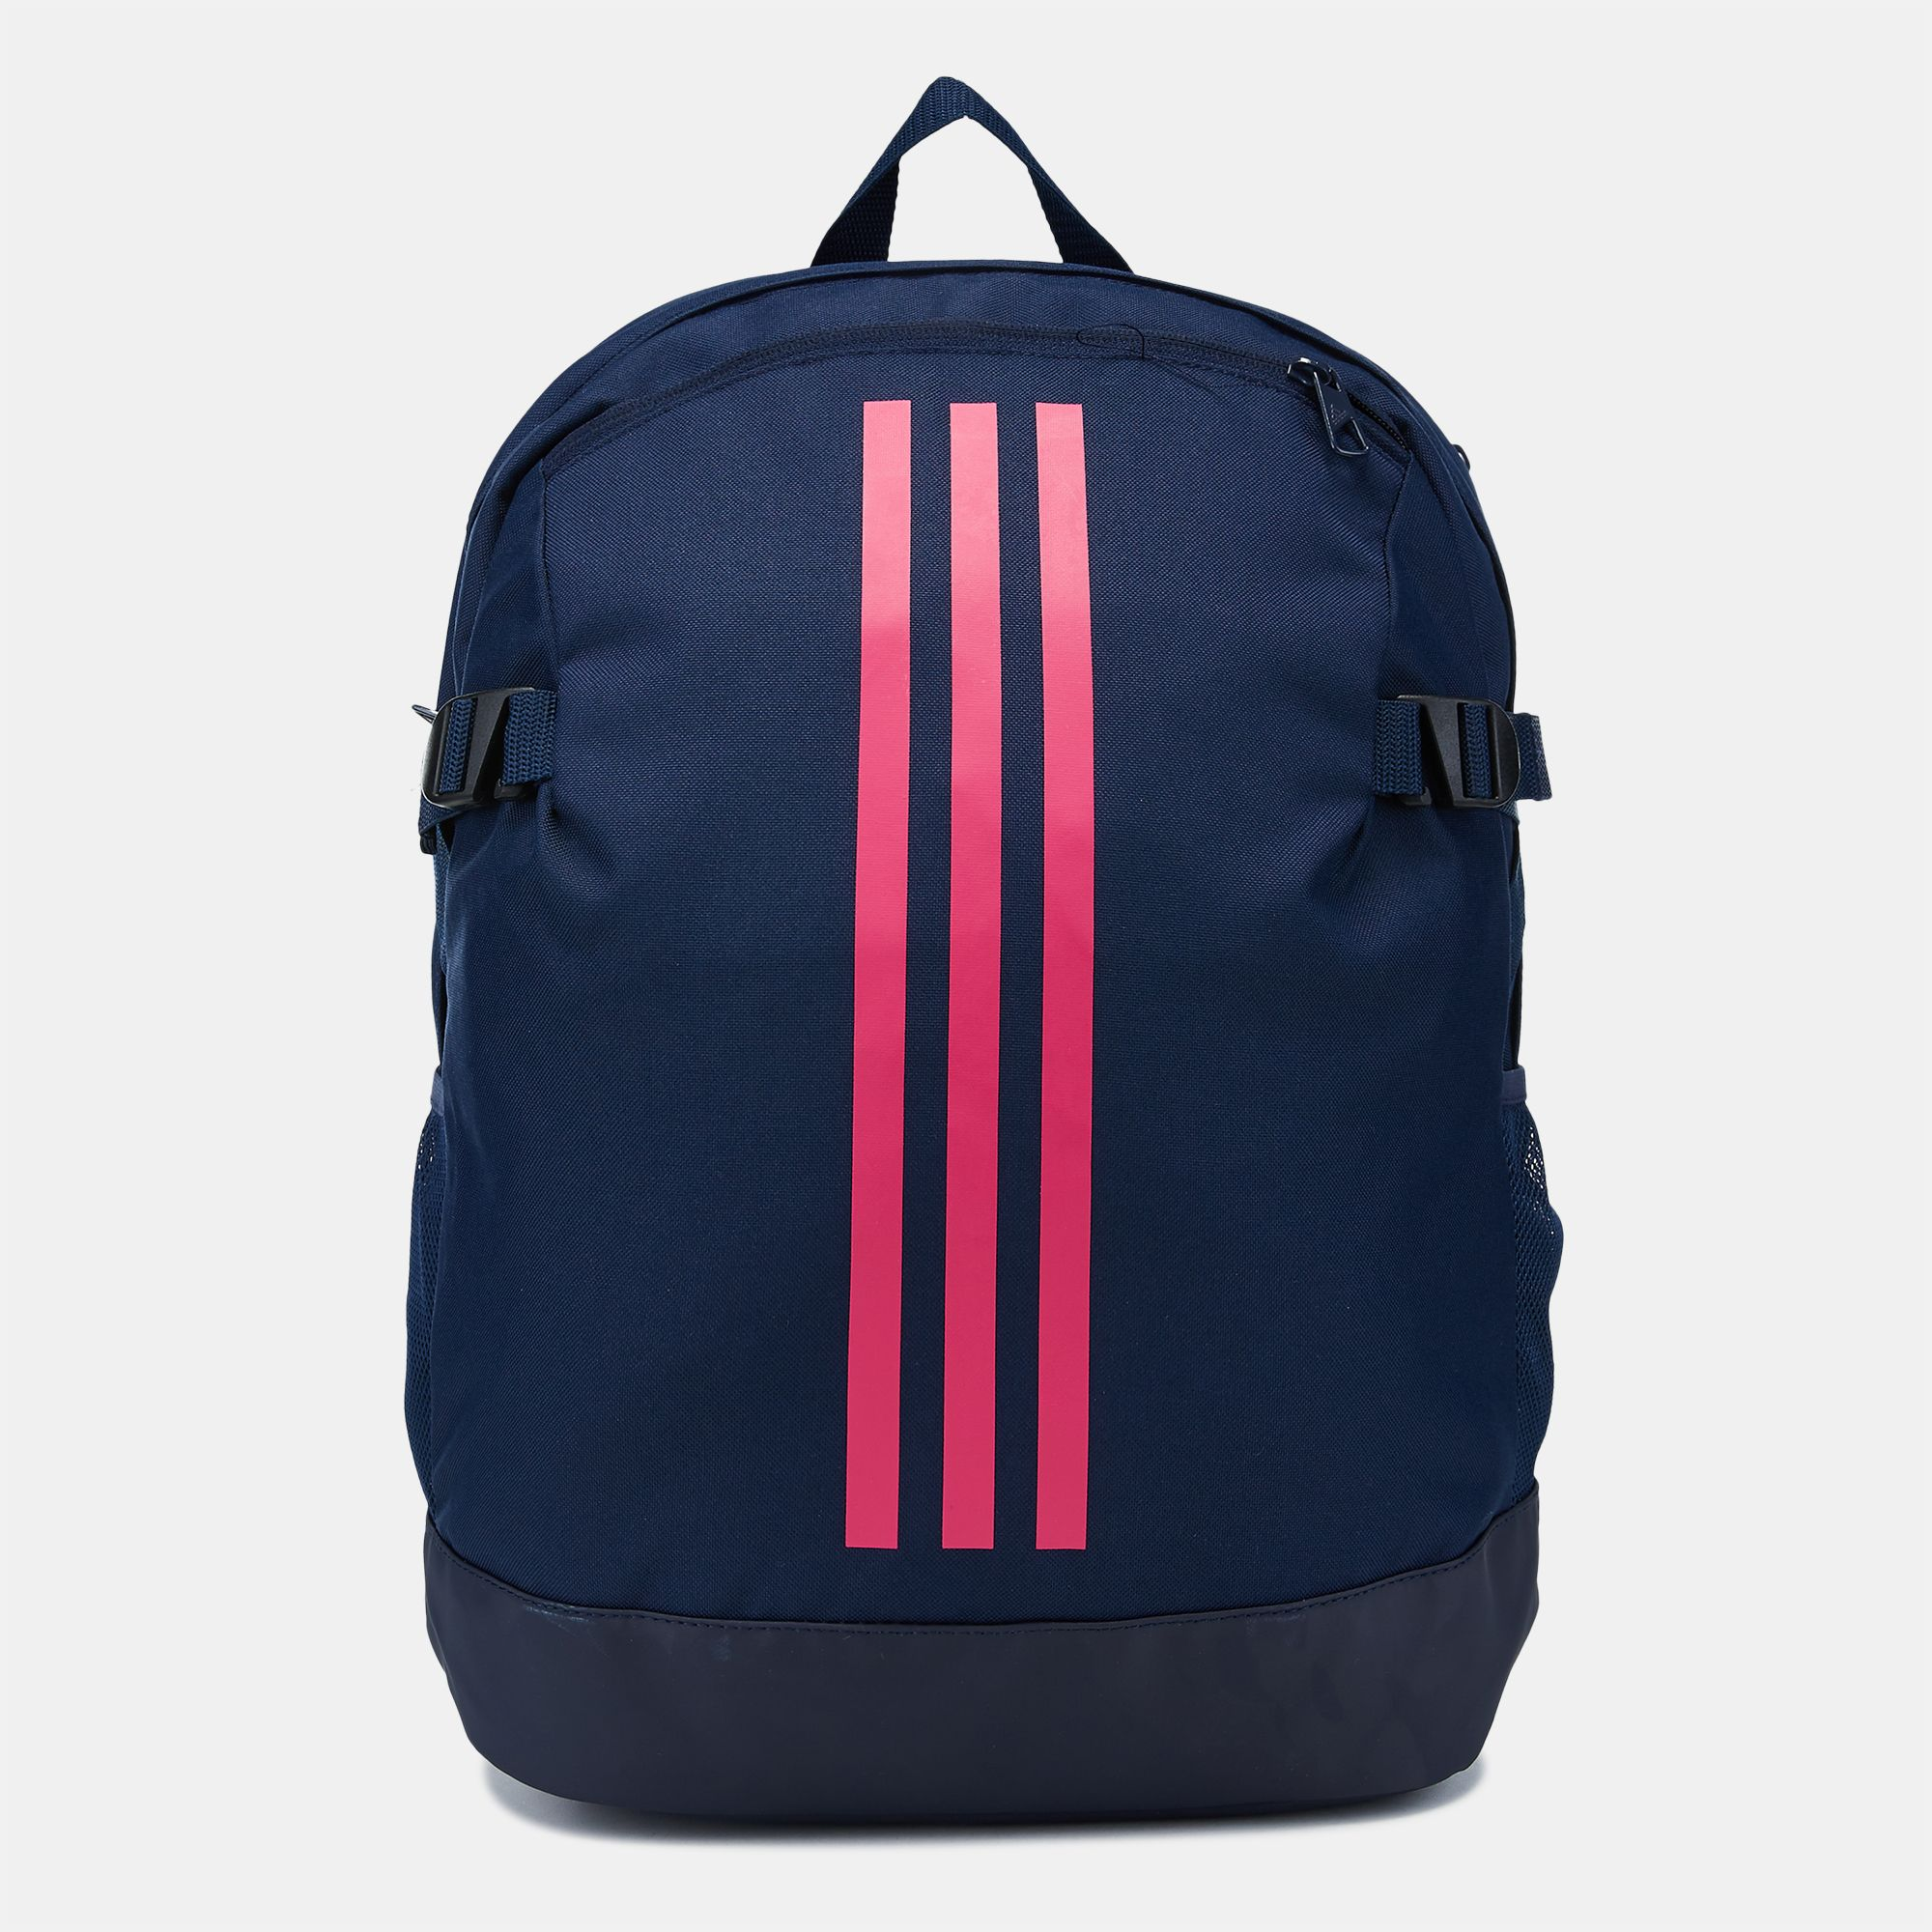 39aa1914ad7c7 adidas 3-Stripes Power Backpack